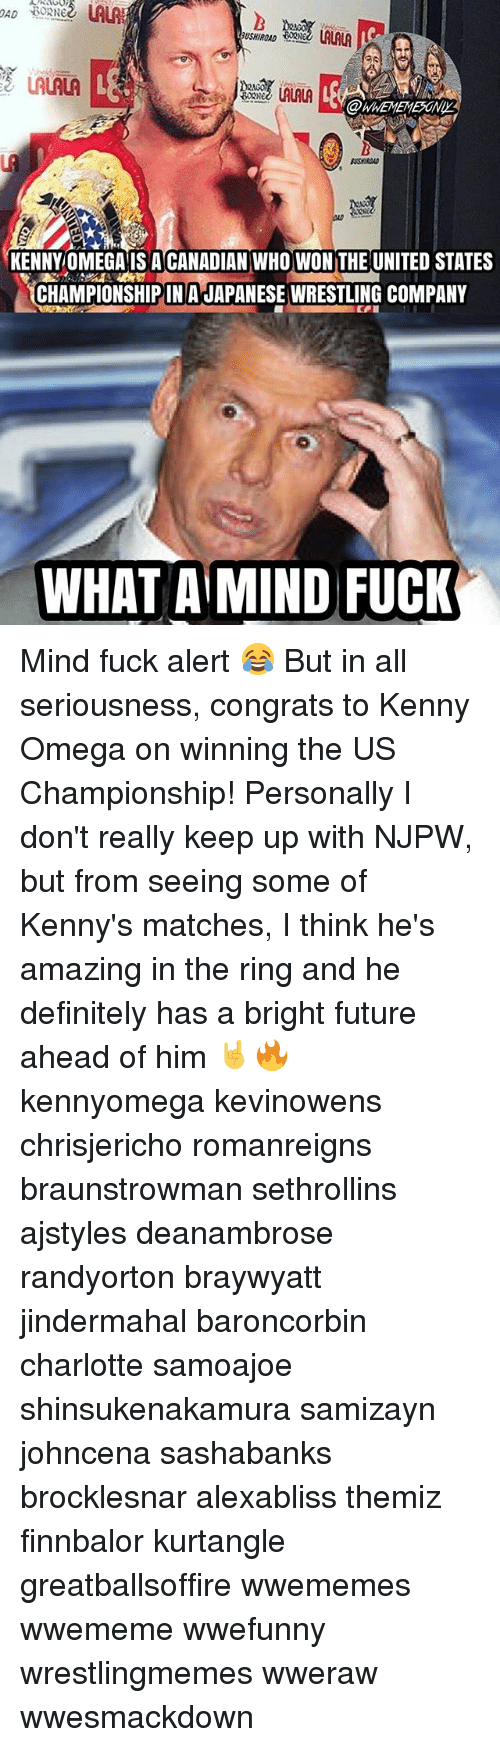 Bright Future: USHIROAD  LALALA  @WHEMEMEONIY  KENNYOMEGA IS ACANADIAN WHO WON THE UNITED STATES  CHAMPIONSHIP IN A JAPANESE WRESILING COMPANY  WHAT A MIND FUCK Mind fuck alert 😂 But in all seriousness, congrats to Kenny Omega on winning the US Championship! Personally I don't really keep up with NJPW, but from seeing some of Kenny's matches, I think he's amazing in the ring and he definitely has a bright future ahead of him 🤘🔥 kennyomega kevinowens chrisjericho romanreigns braunstrowman sethrollins ajstyles deanambrose randyorton braywyatt jindermahal baroncorbin charlotte samoajoe shinsukenakamura samizayn johncena sashabanks brocklesnar alexabliss themiz finnbalor kurtangle greatballsoffire wwememes wwememe wwefunny wrestlingmemes wweraw wwesmackdown